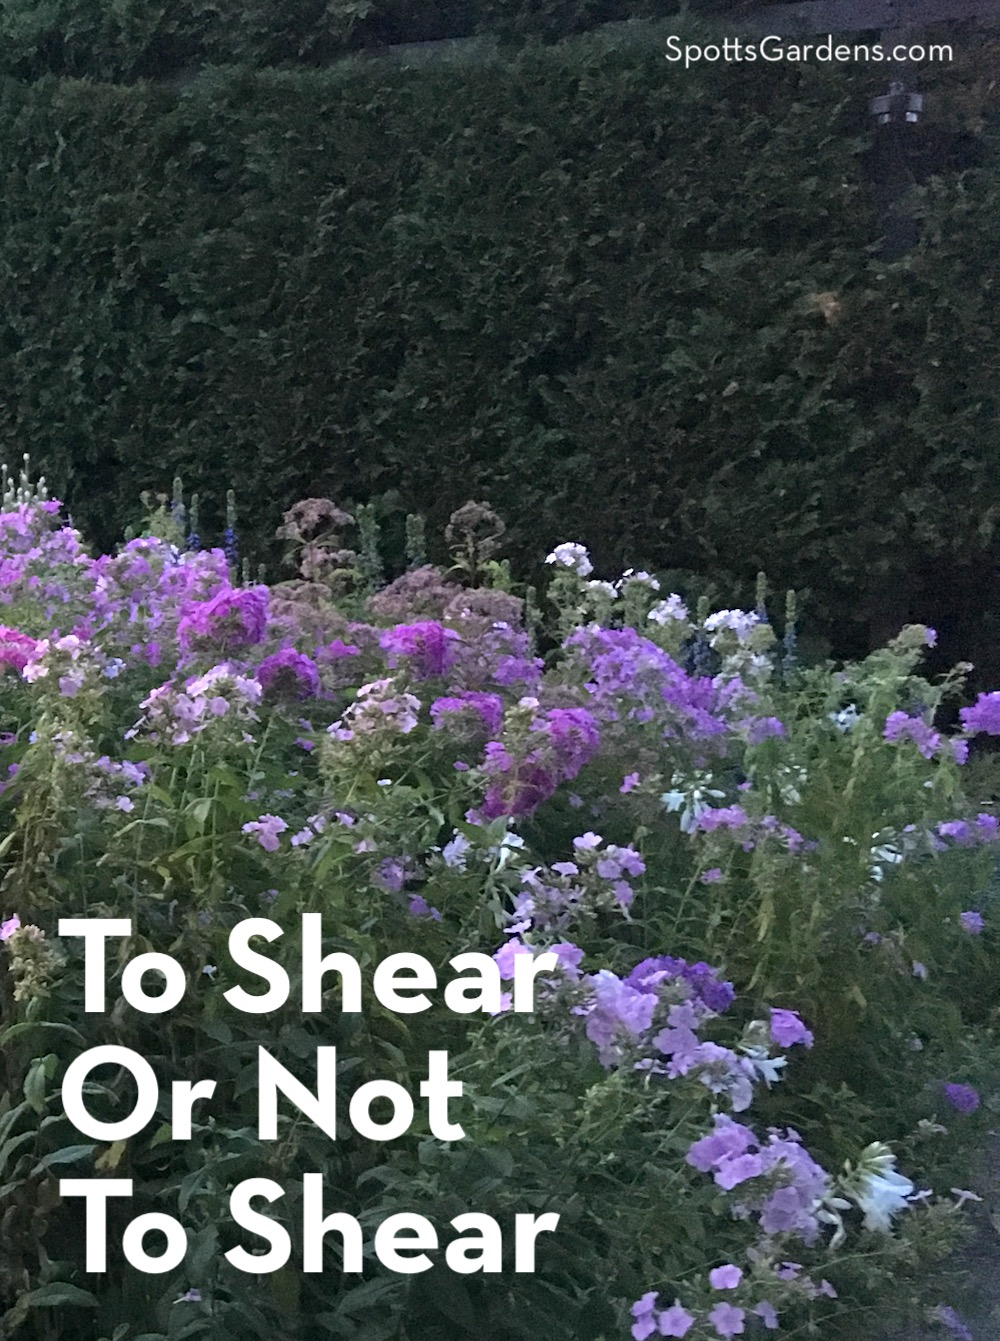 To Shear or Not to Shear